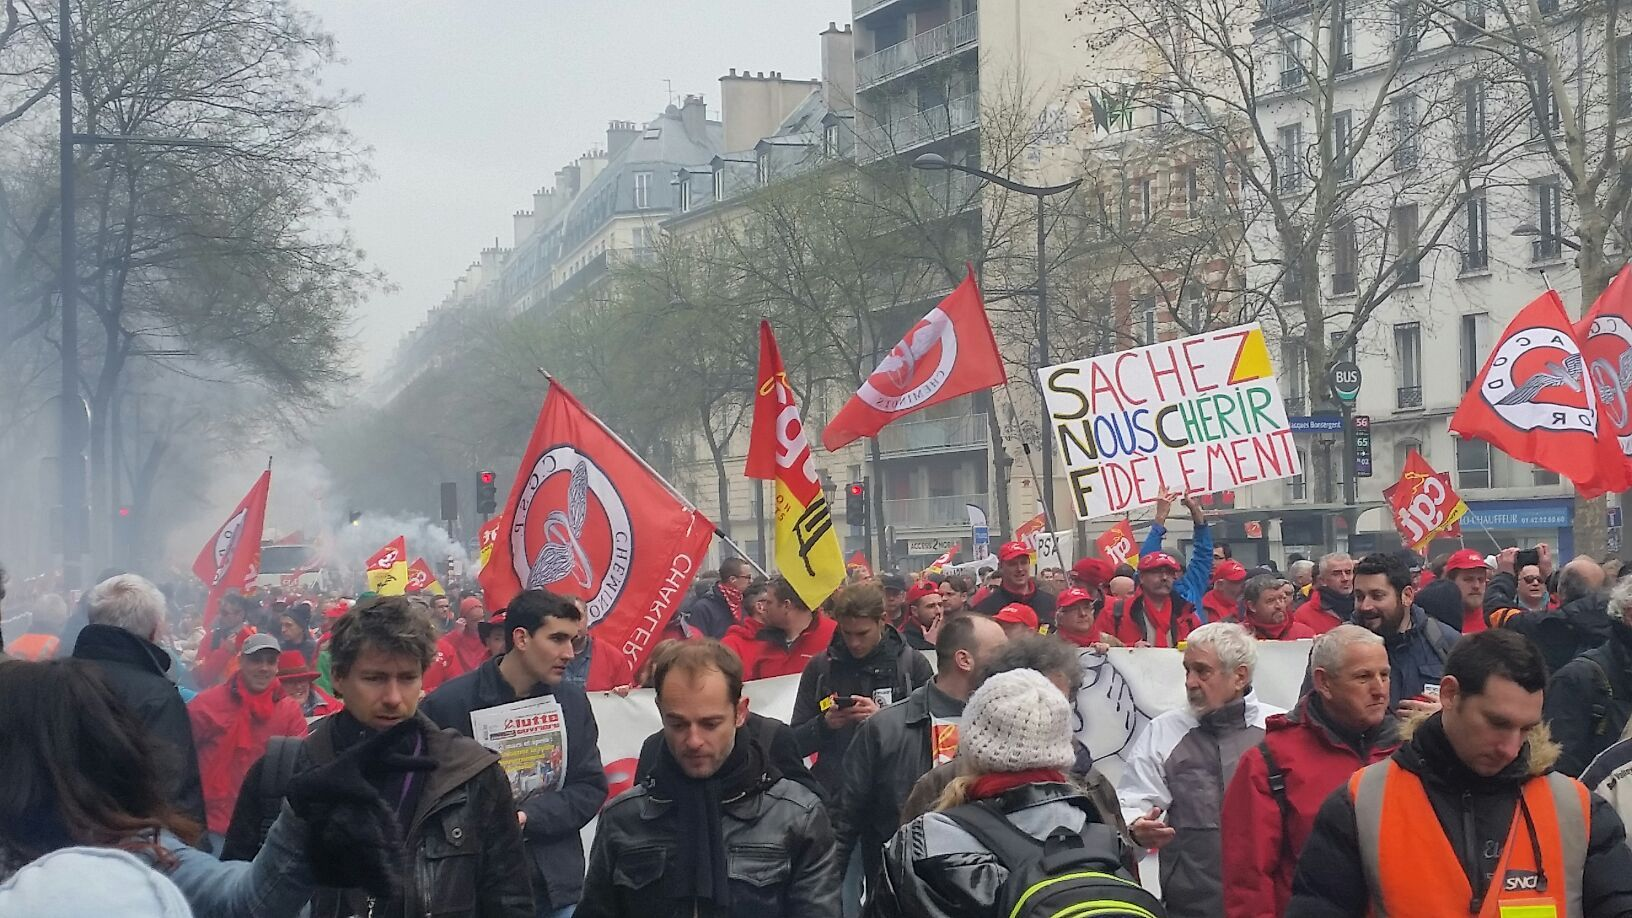 Les plus de 180 manifestations du 22 mars marquent un tournant… vers un possible embrasement social ?